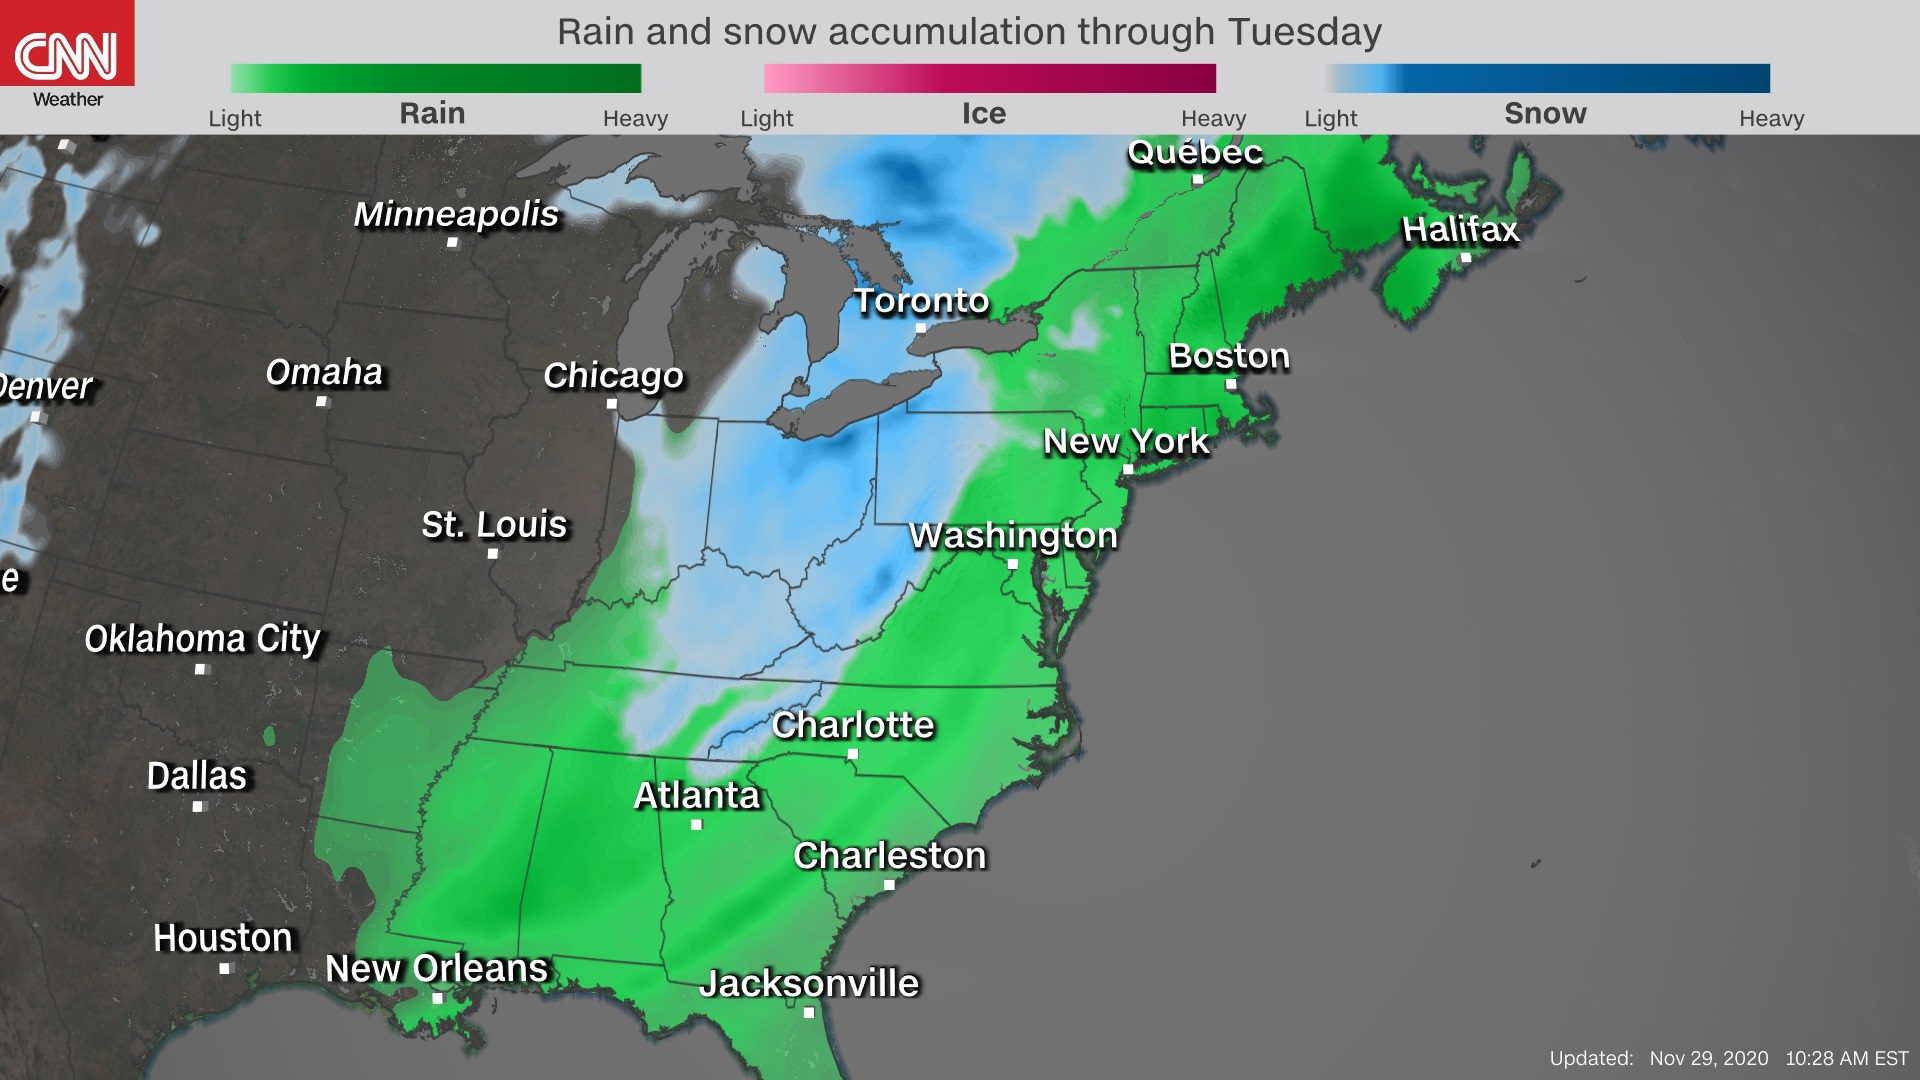 East Coast braces for snow, heavy rain in first major storm system of the fall